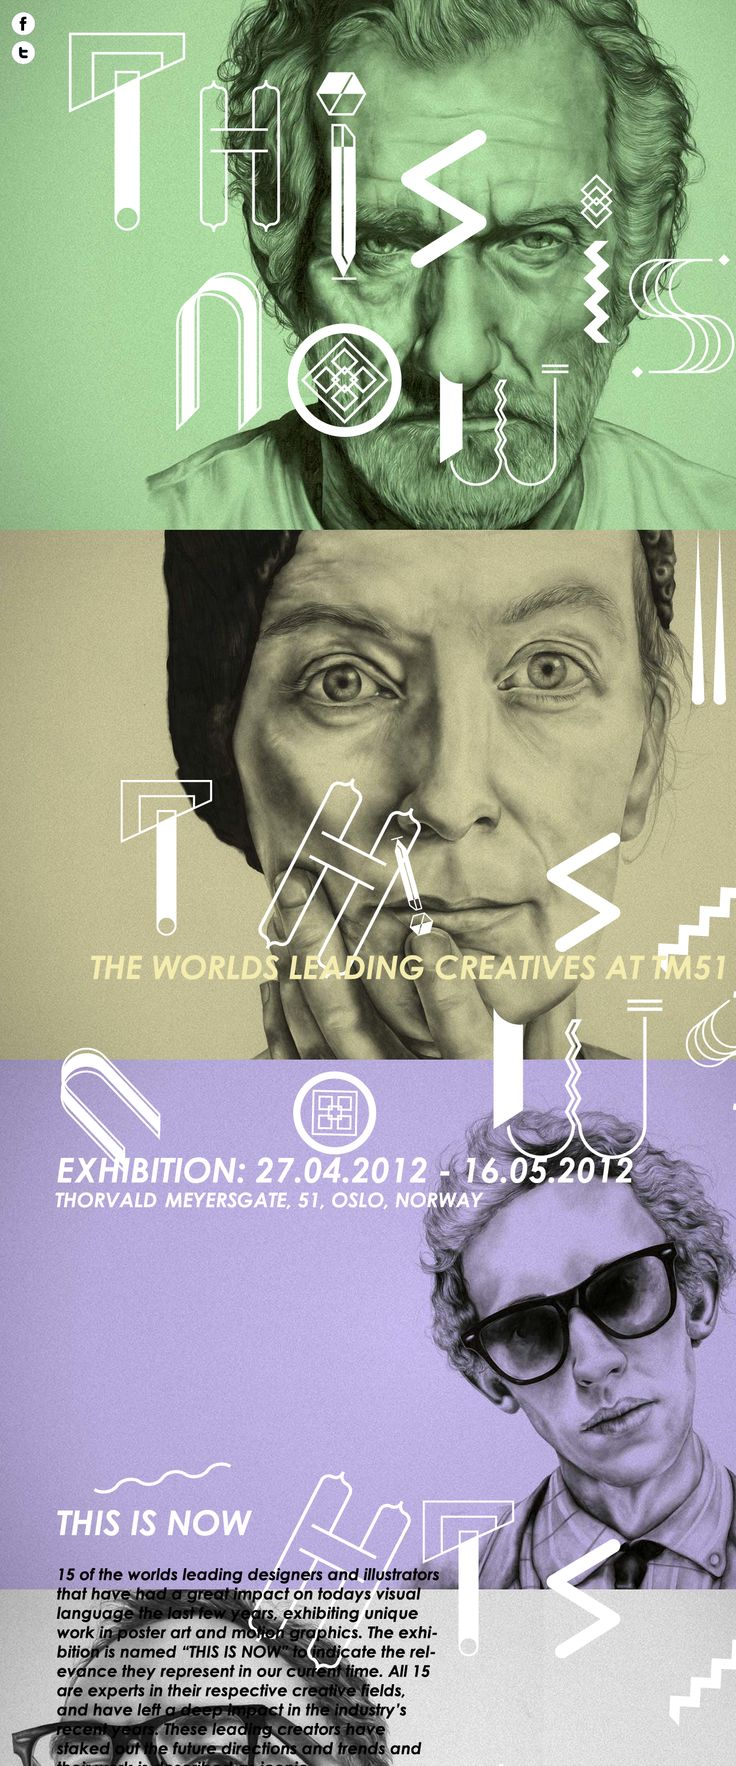 THIS IS NOW http://www.thisisnowexhibition.com/ #parallax #scrolling #fullscreen